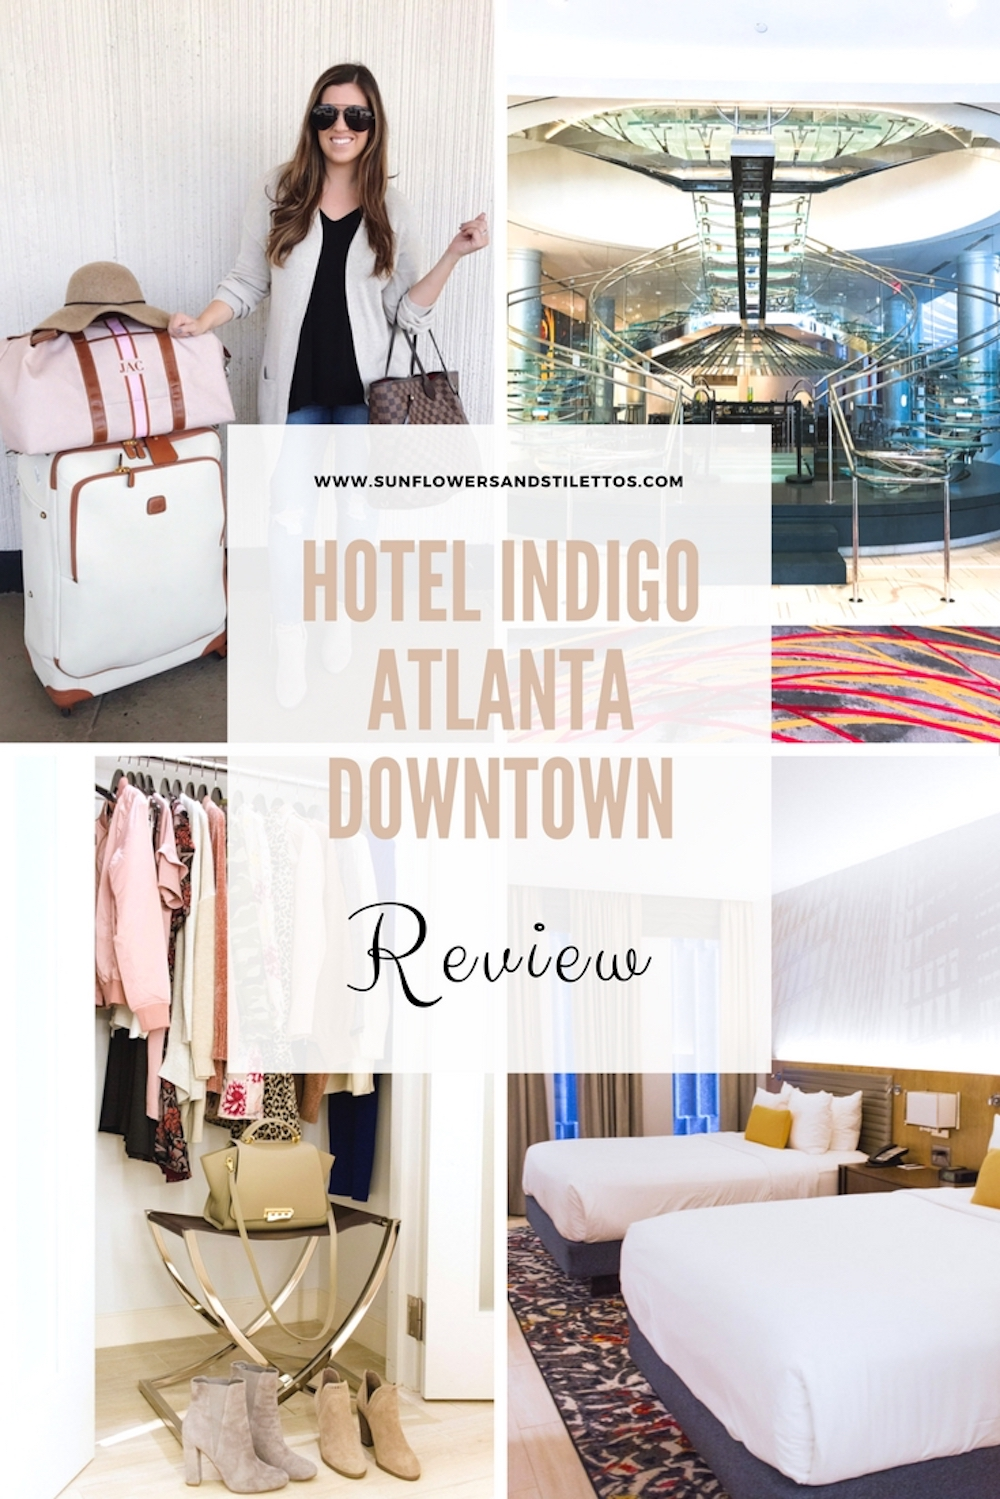 HOTEL INDIGO ATLANTA DOWNTOWN REVIEW, Sunflowers and Stilettos blog, travel blog